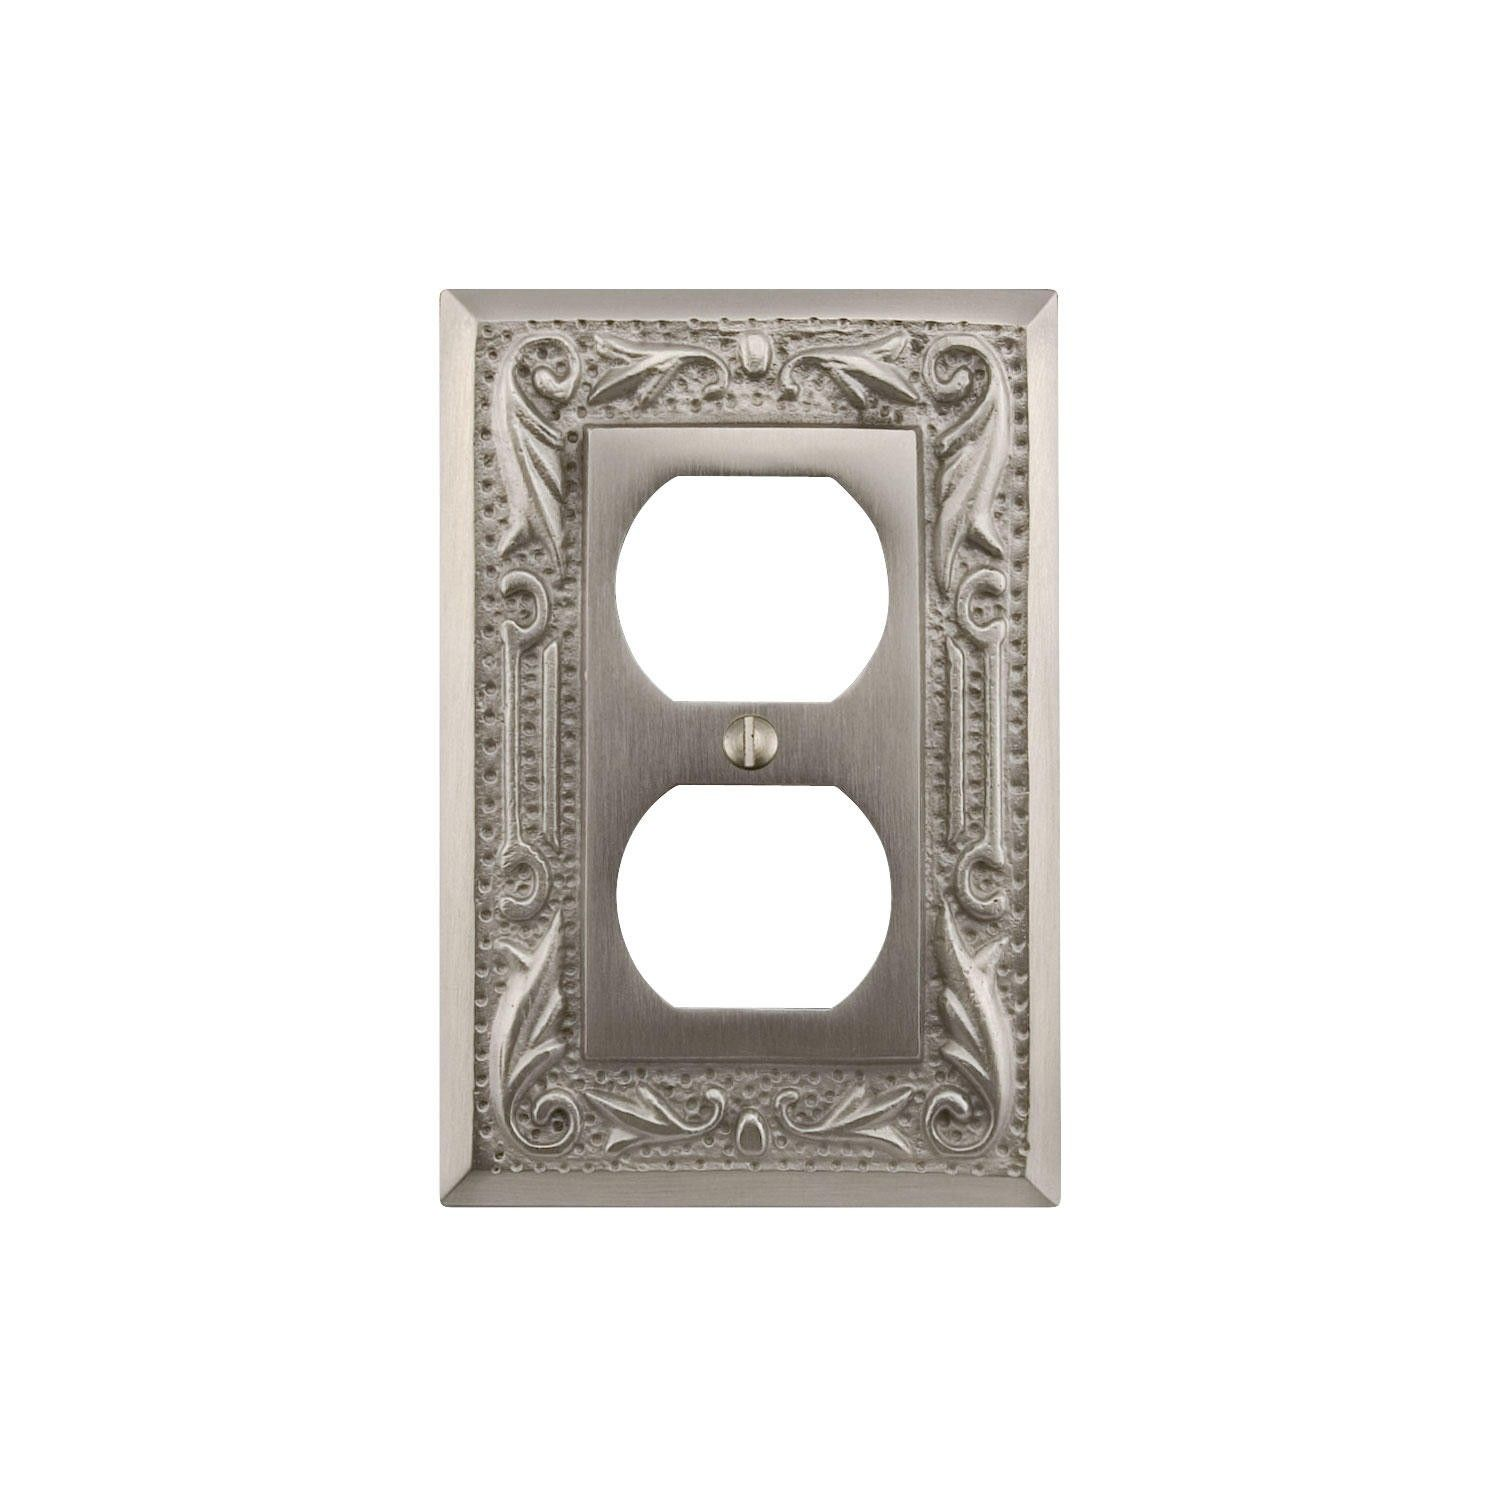 Bronze Switch Plates And Outlet Covers Floral Design Solid Brass Duplex Outlet Cover  Solid Brass Oil